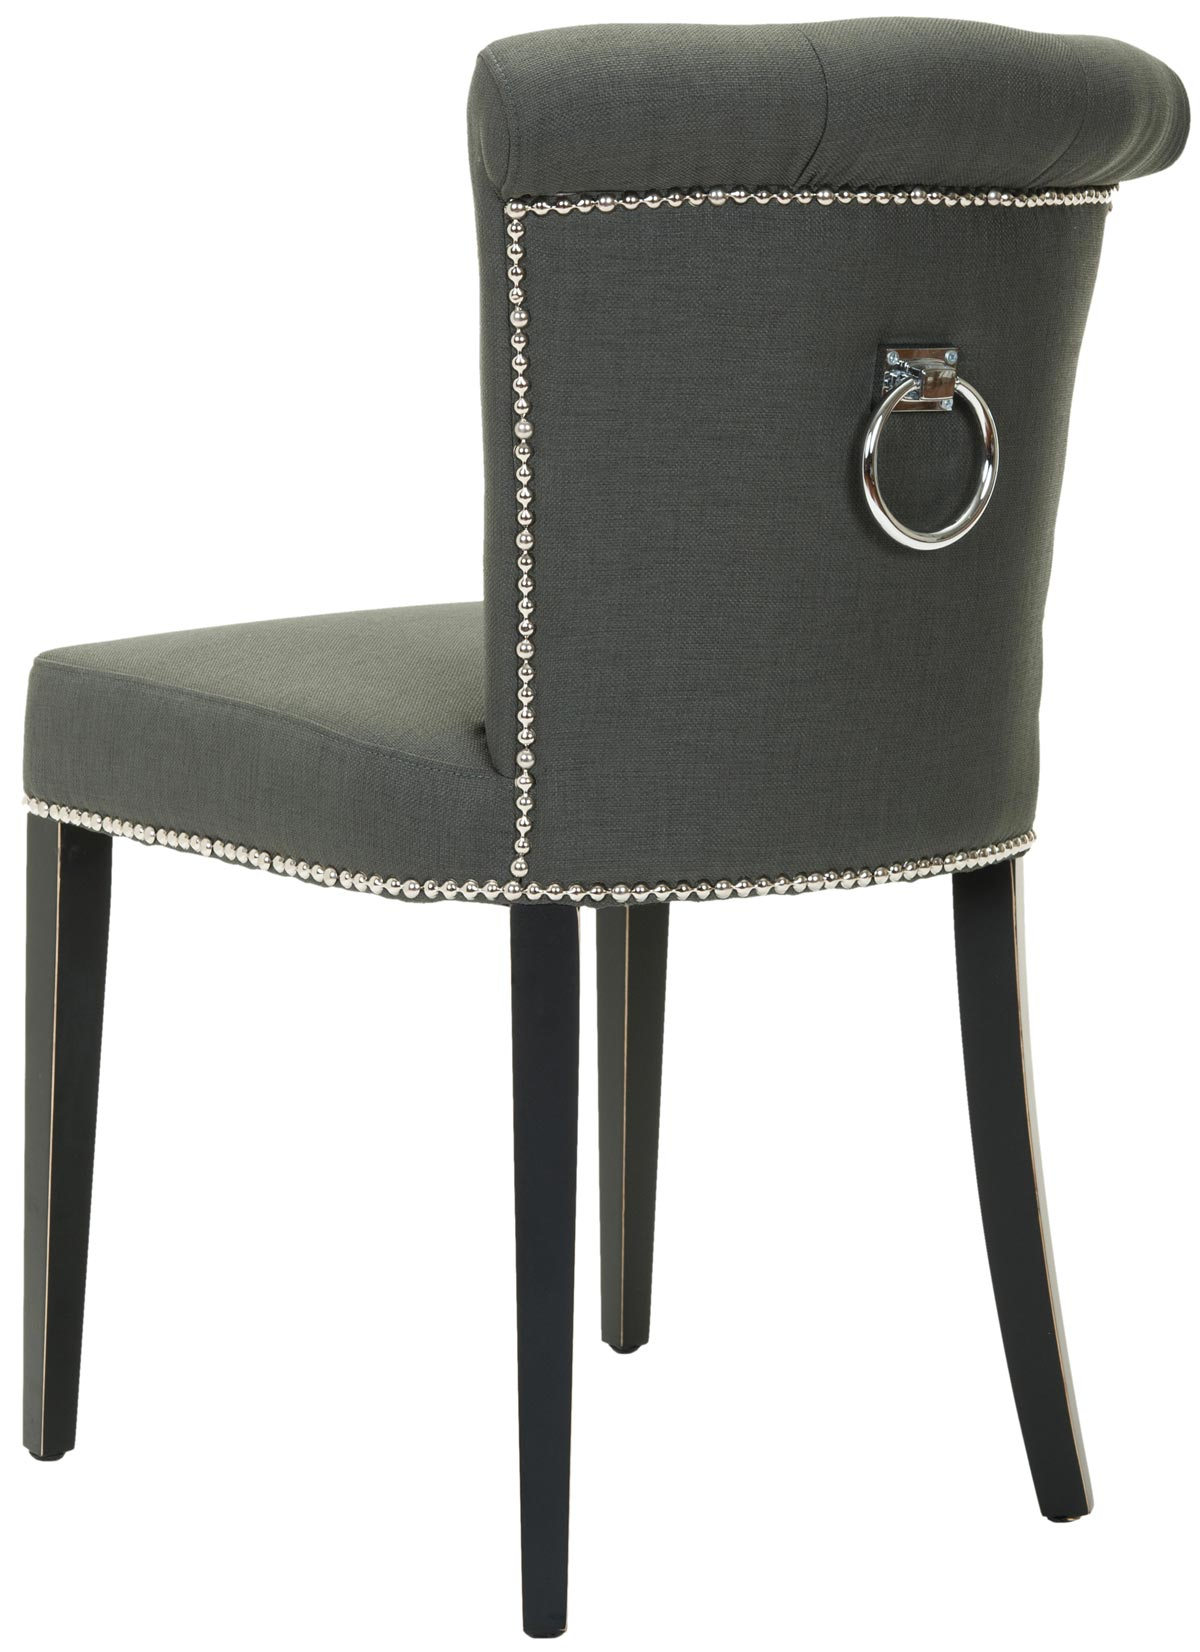 safavieh sinclair ring side chair baby bjorn potty mcr4514a arion gray set of two